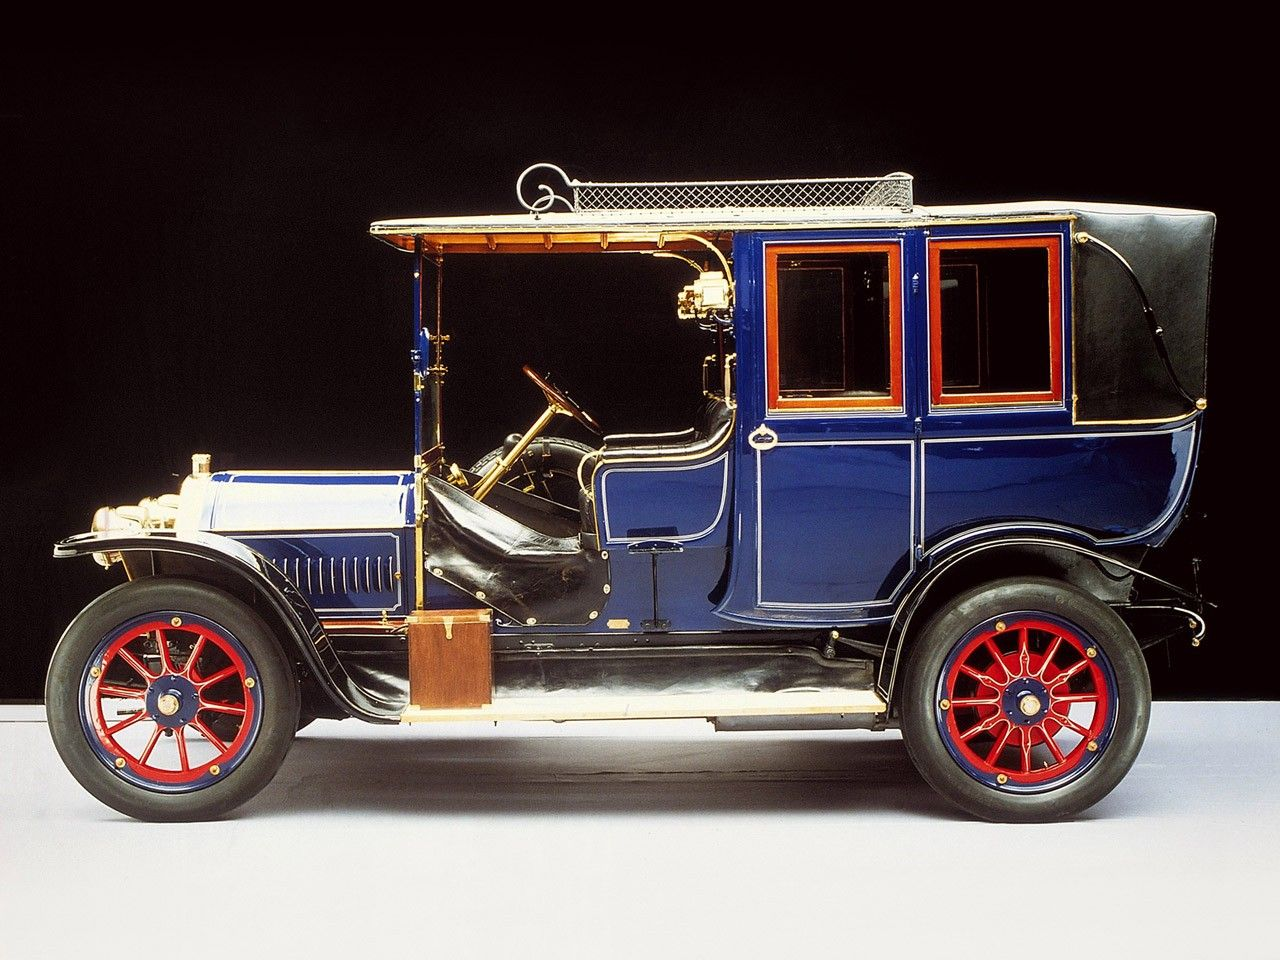 1909 - Mercedes-Benz Landaulet | 1900 to 1910 early CARZ | Pinterest ...